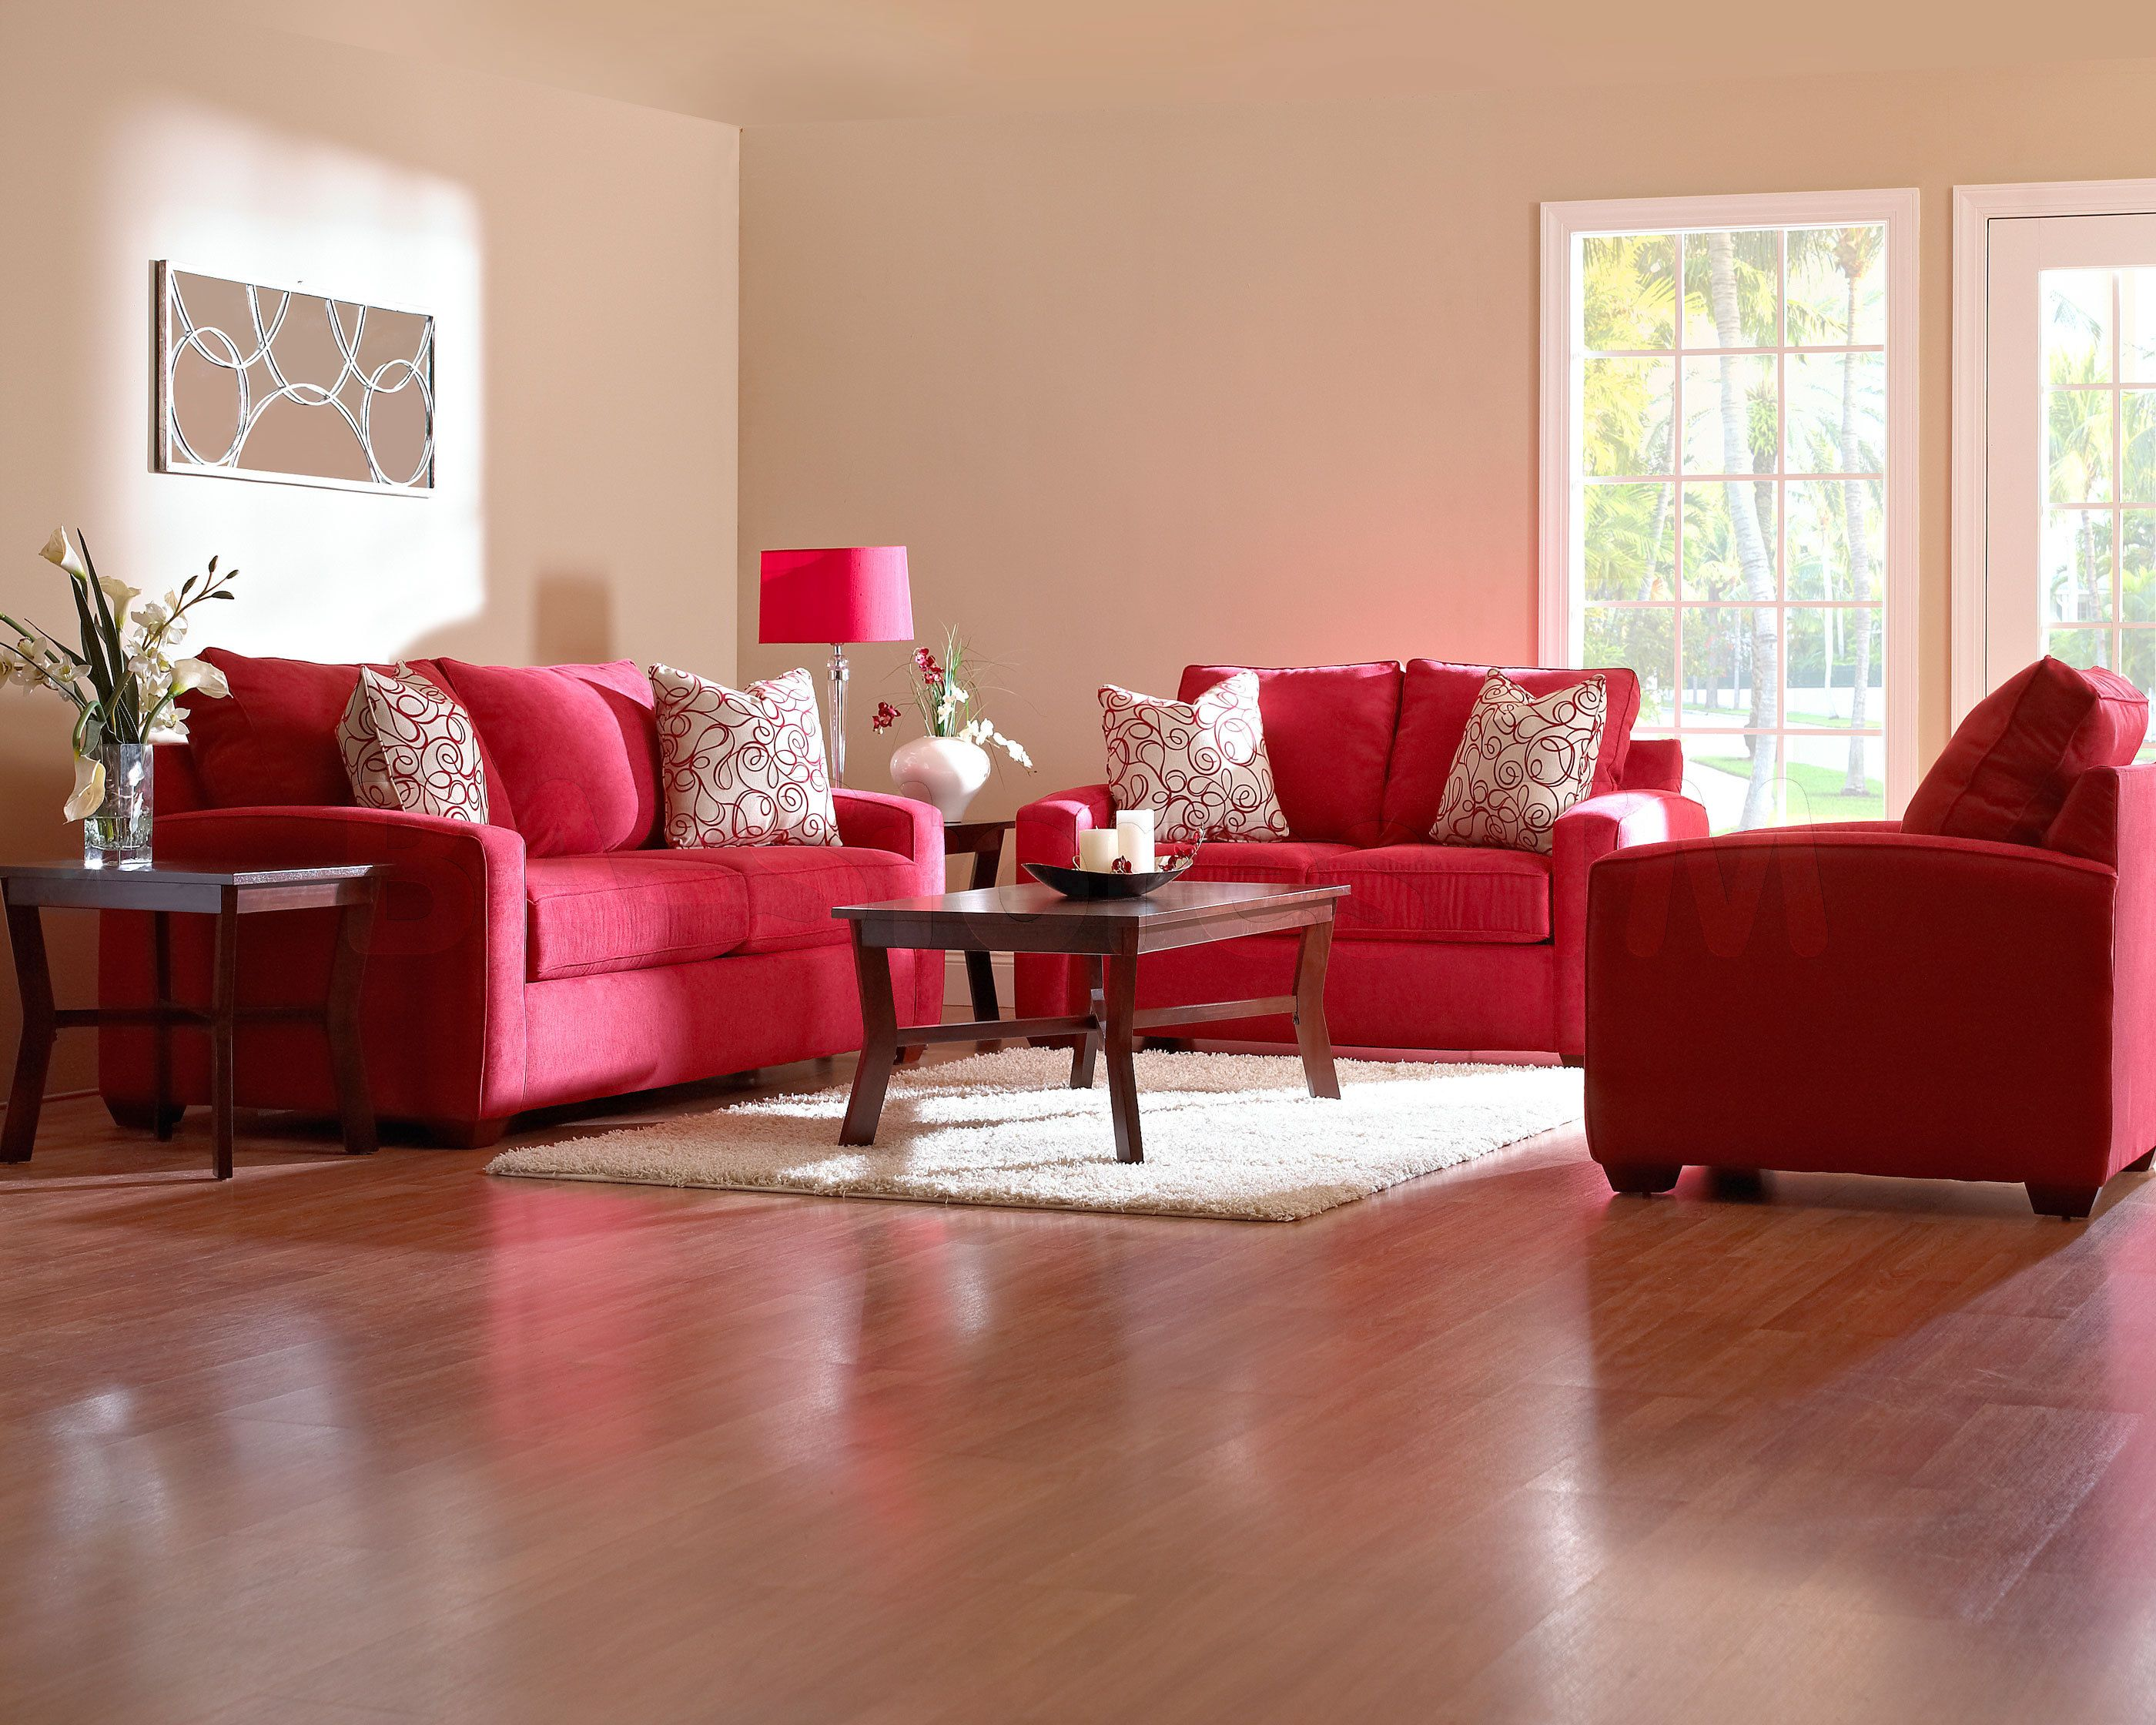 BLRRS23  Breathtaking Living Room Red Sofa Today:23-23-23